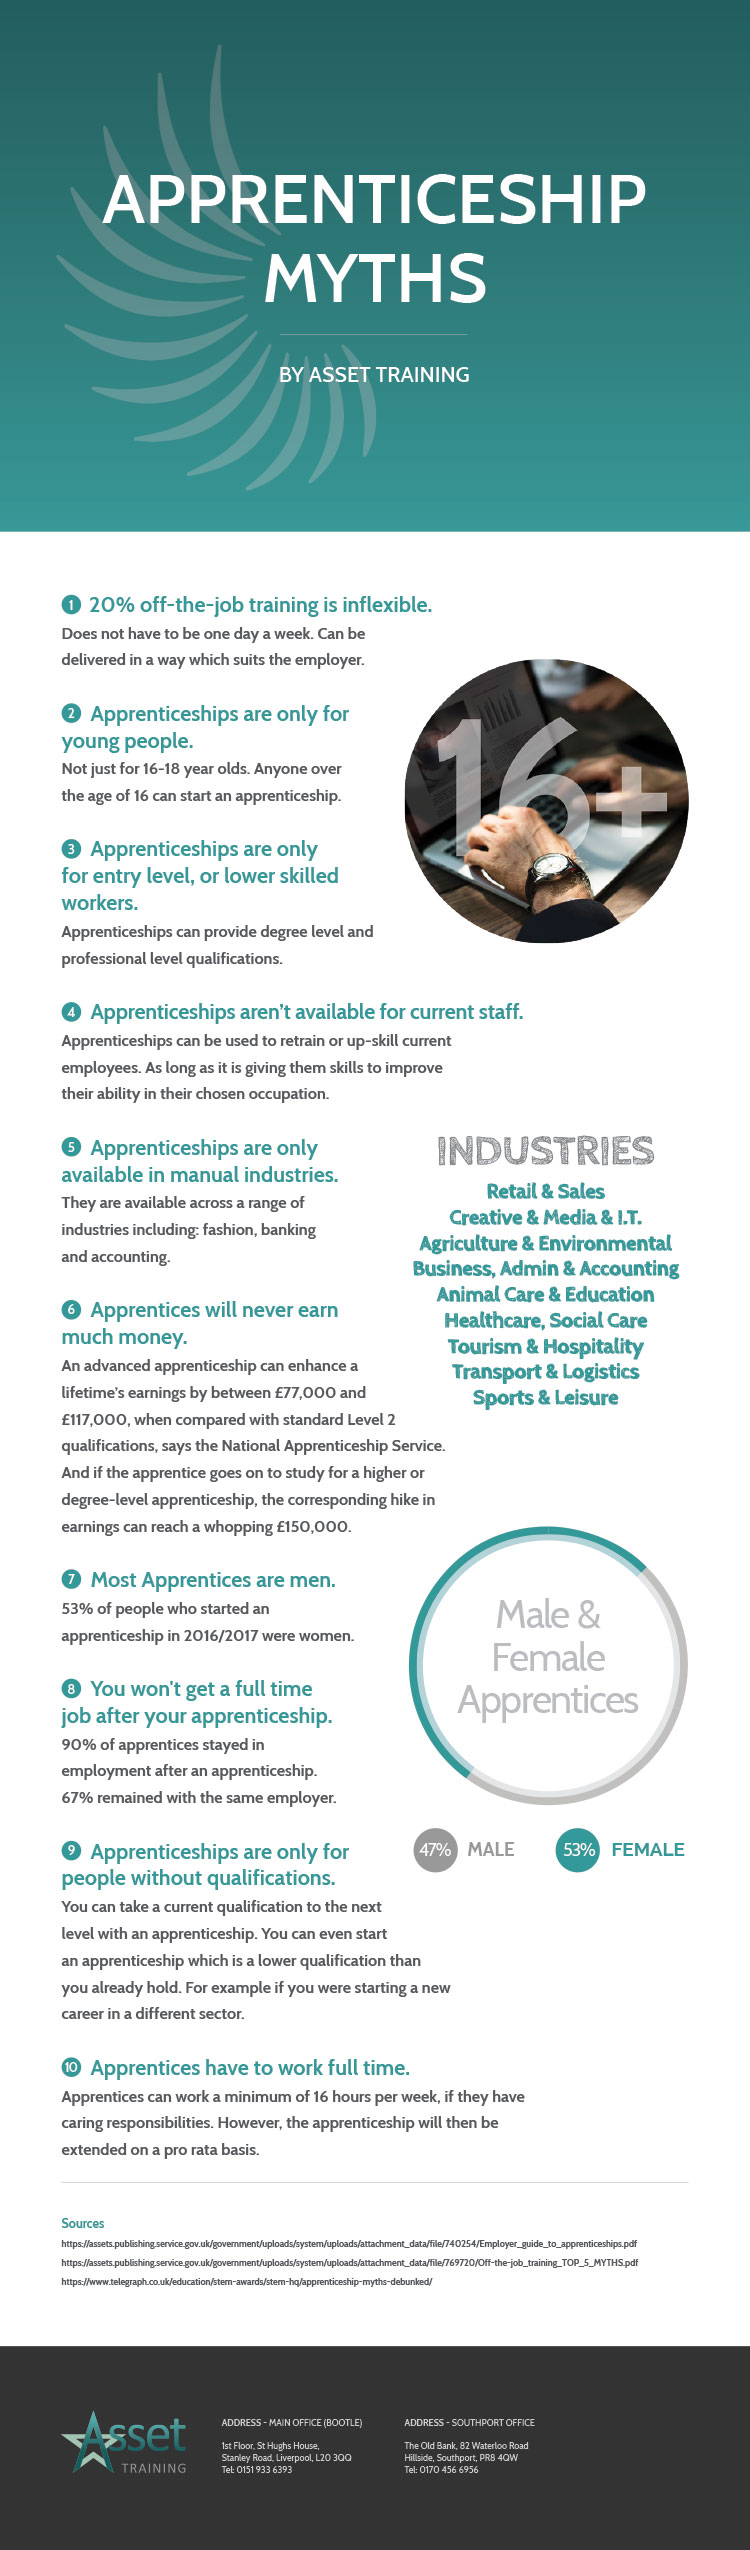 Apprenticeship-Myths-New-infographic-plaza